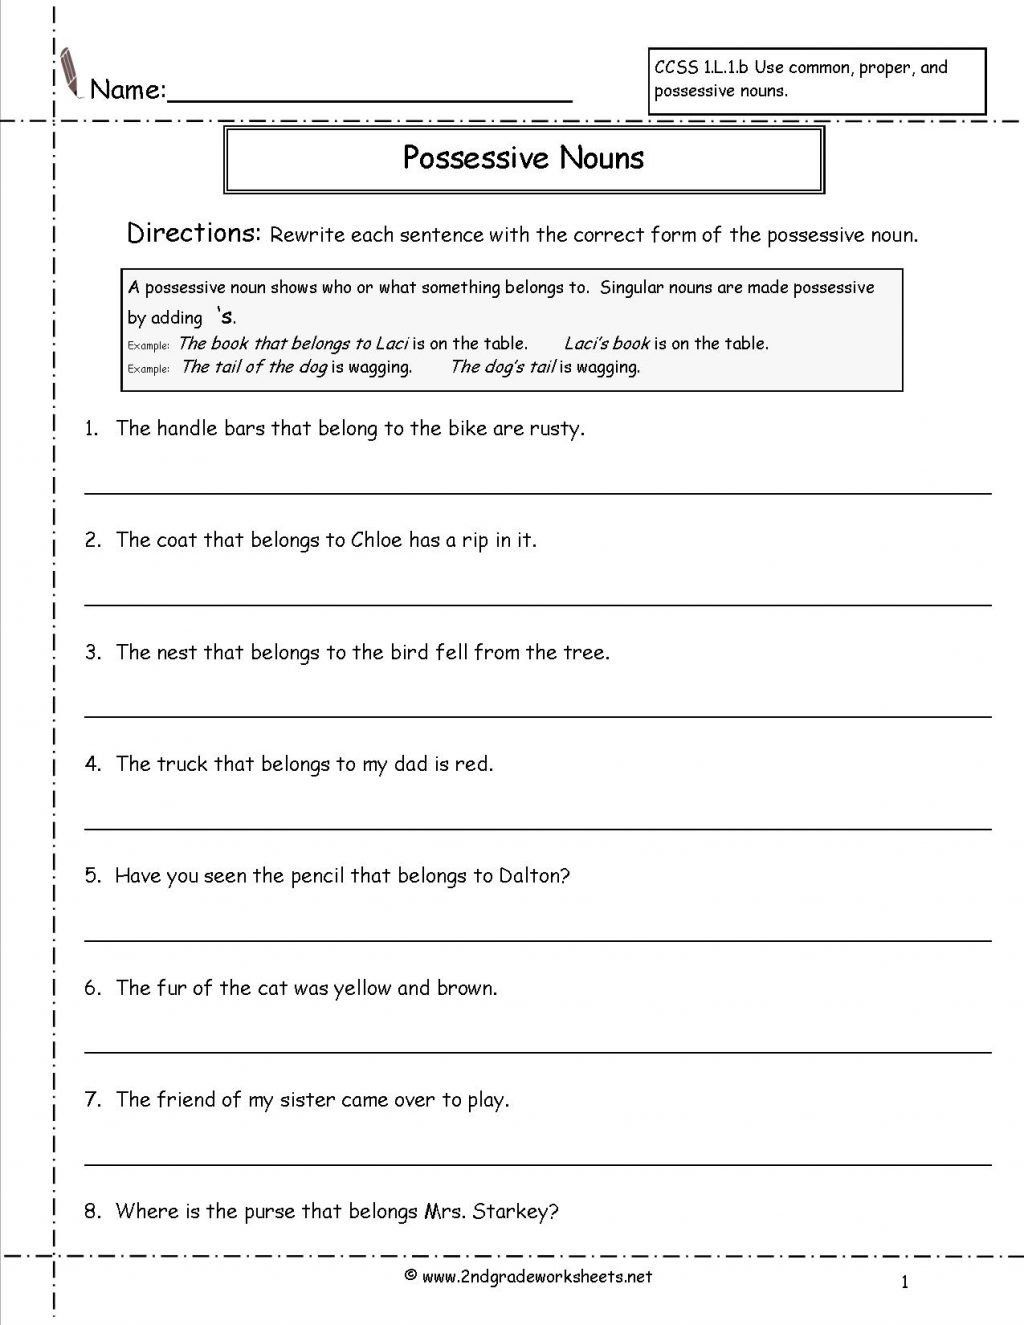 Second Grade Pronoun Worksheets Worksheet Ideas Second Grade Possessive  Nounss astonishi… in 2020   Possessive nouns worksheets [ 1325 x 1024 Pixel ]